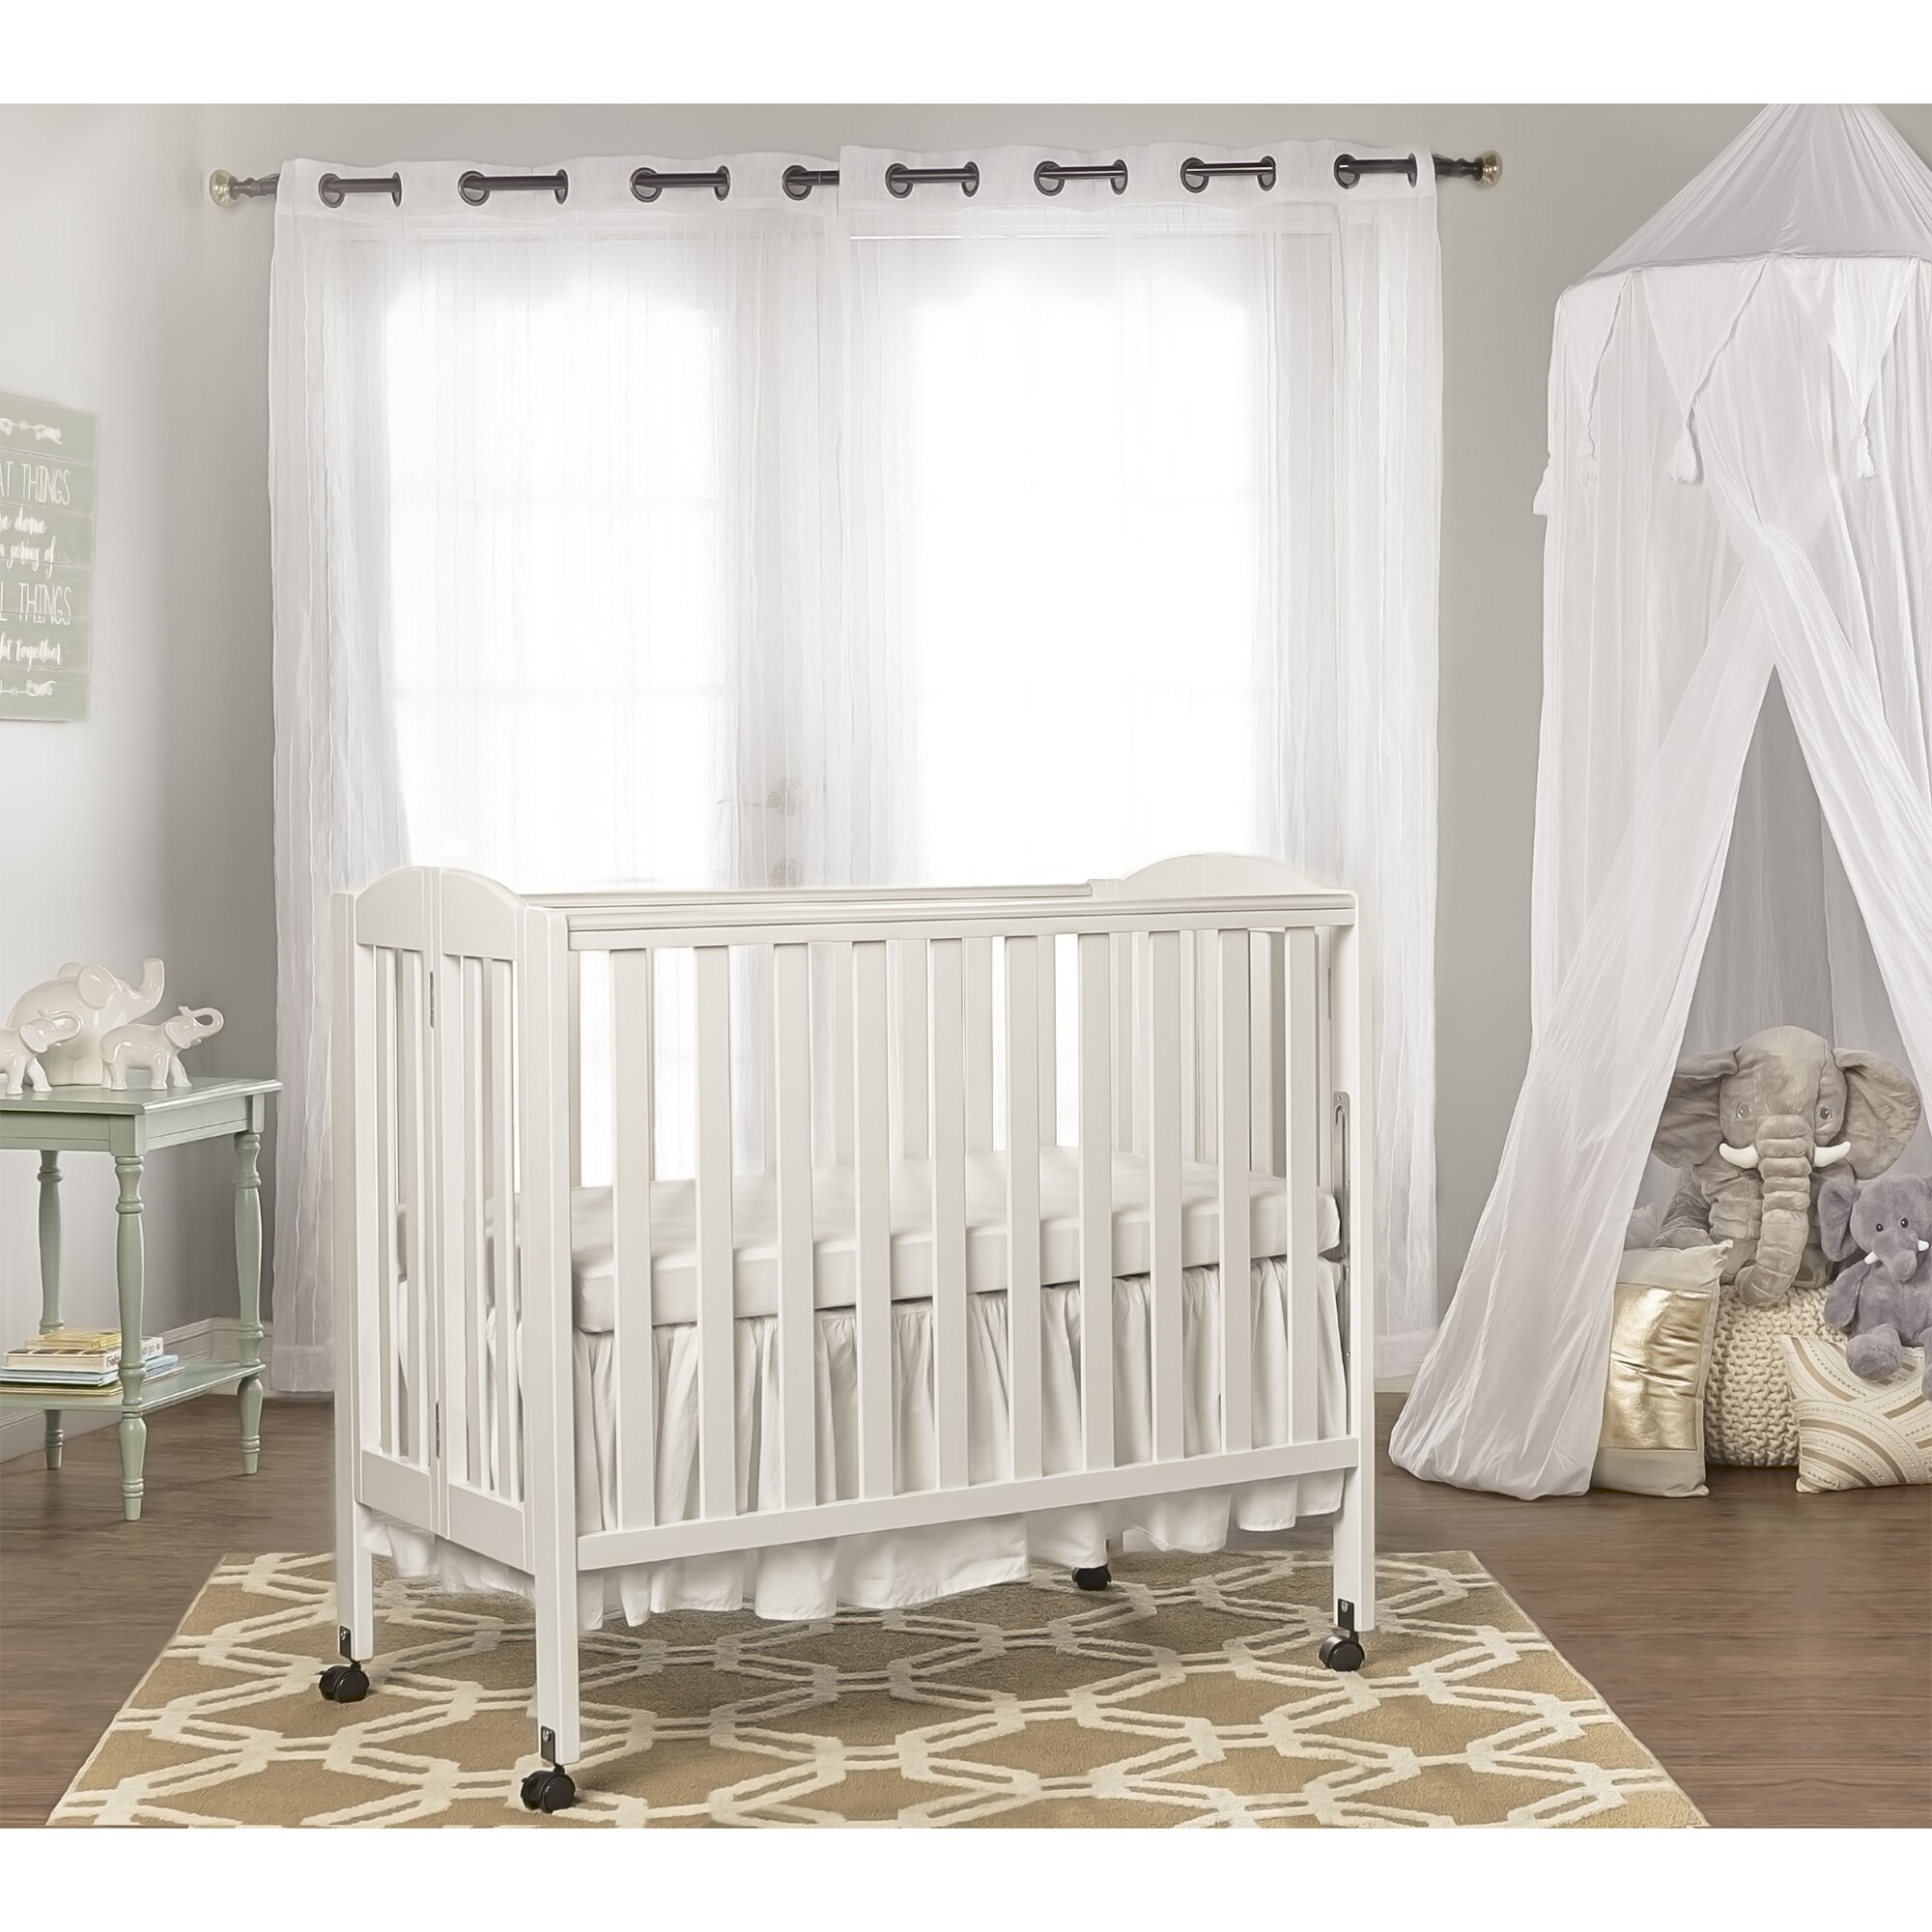 Crib for sale sheffield - Dream On Me 3 In 1 Portable Convertible Folding Crib